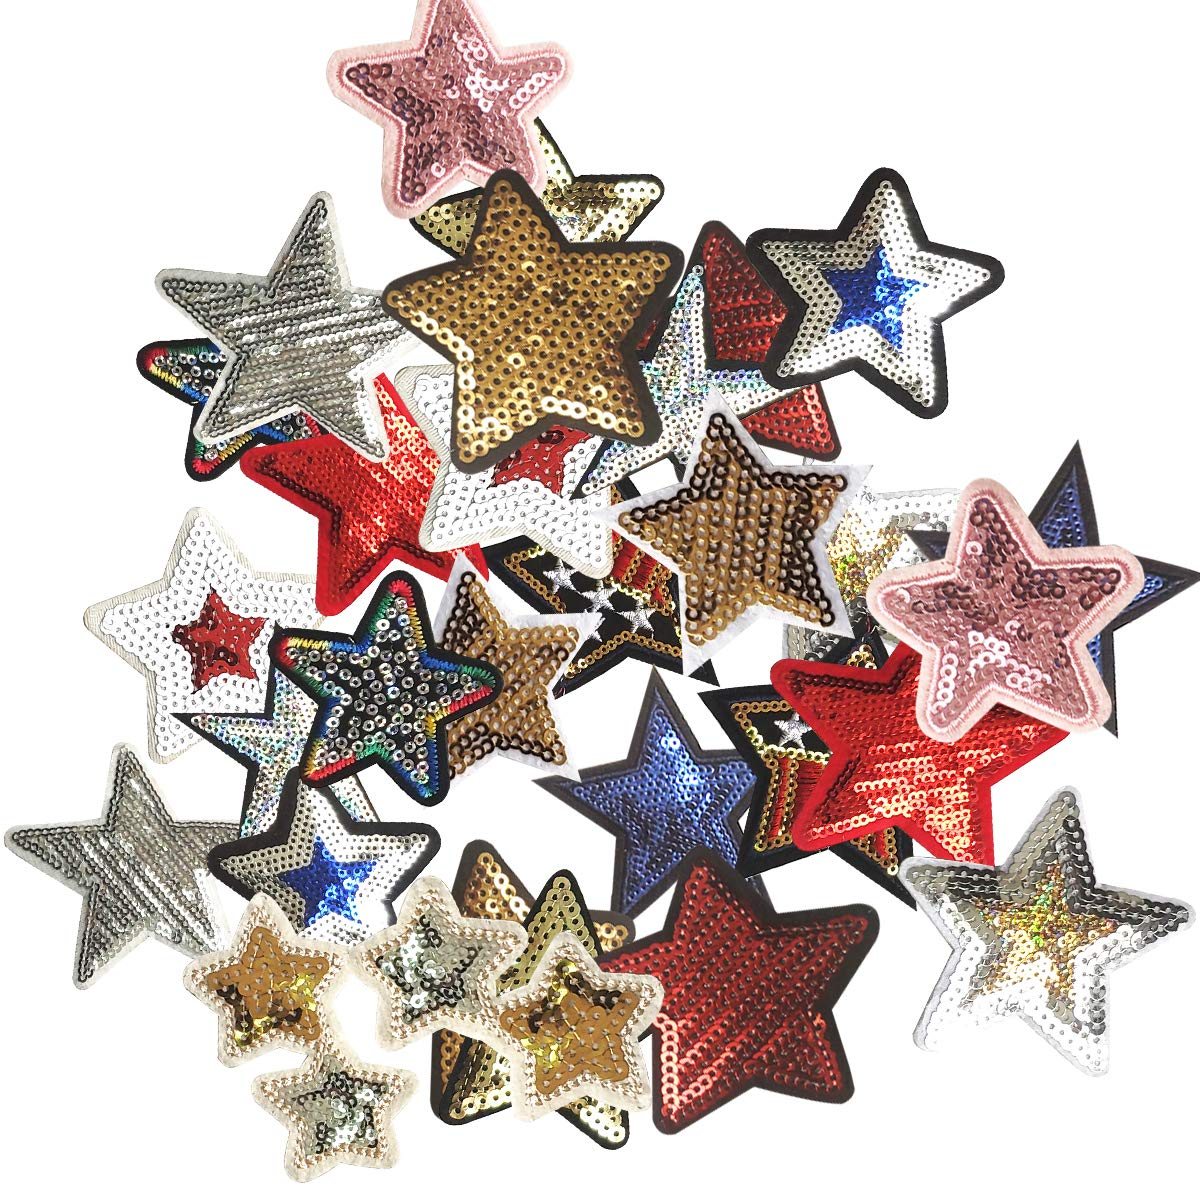 Sequins Star Appliques Patches for Clothing, 30pcs Iron On/Sew On Embroidery Patch Badge for DIY Jeans Jackets T-Shirt Backpacks